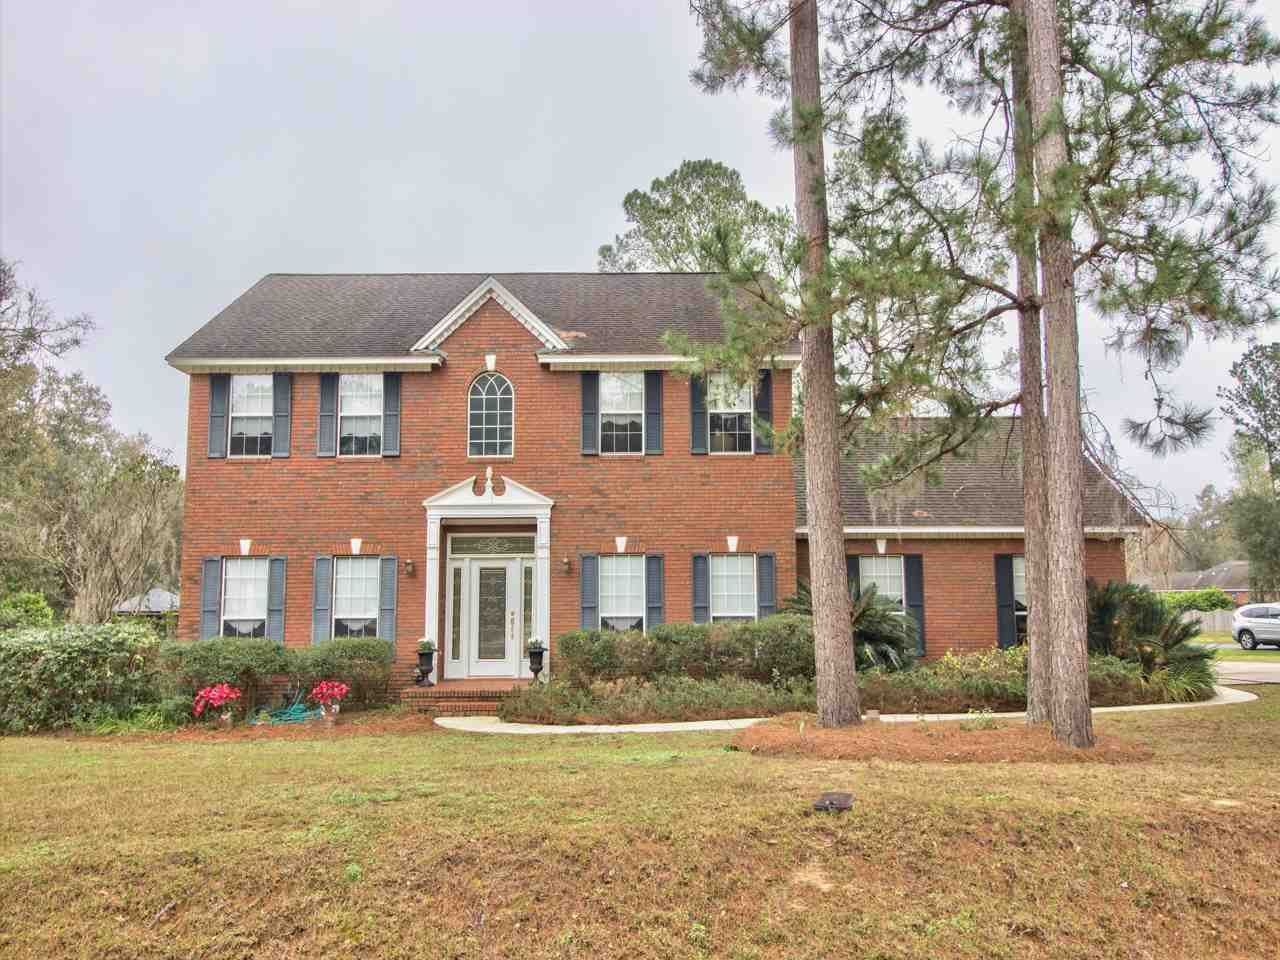 Photo of 7942 Preservation Road, TALLAHASSEE, FL 32312 (MLS # 316089)